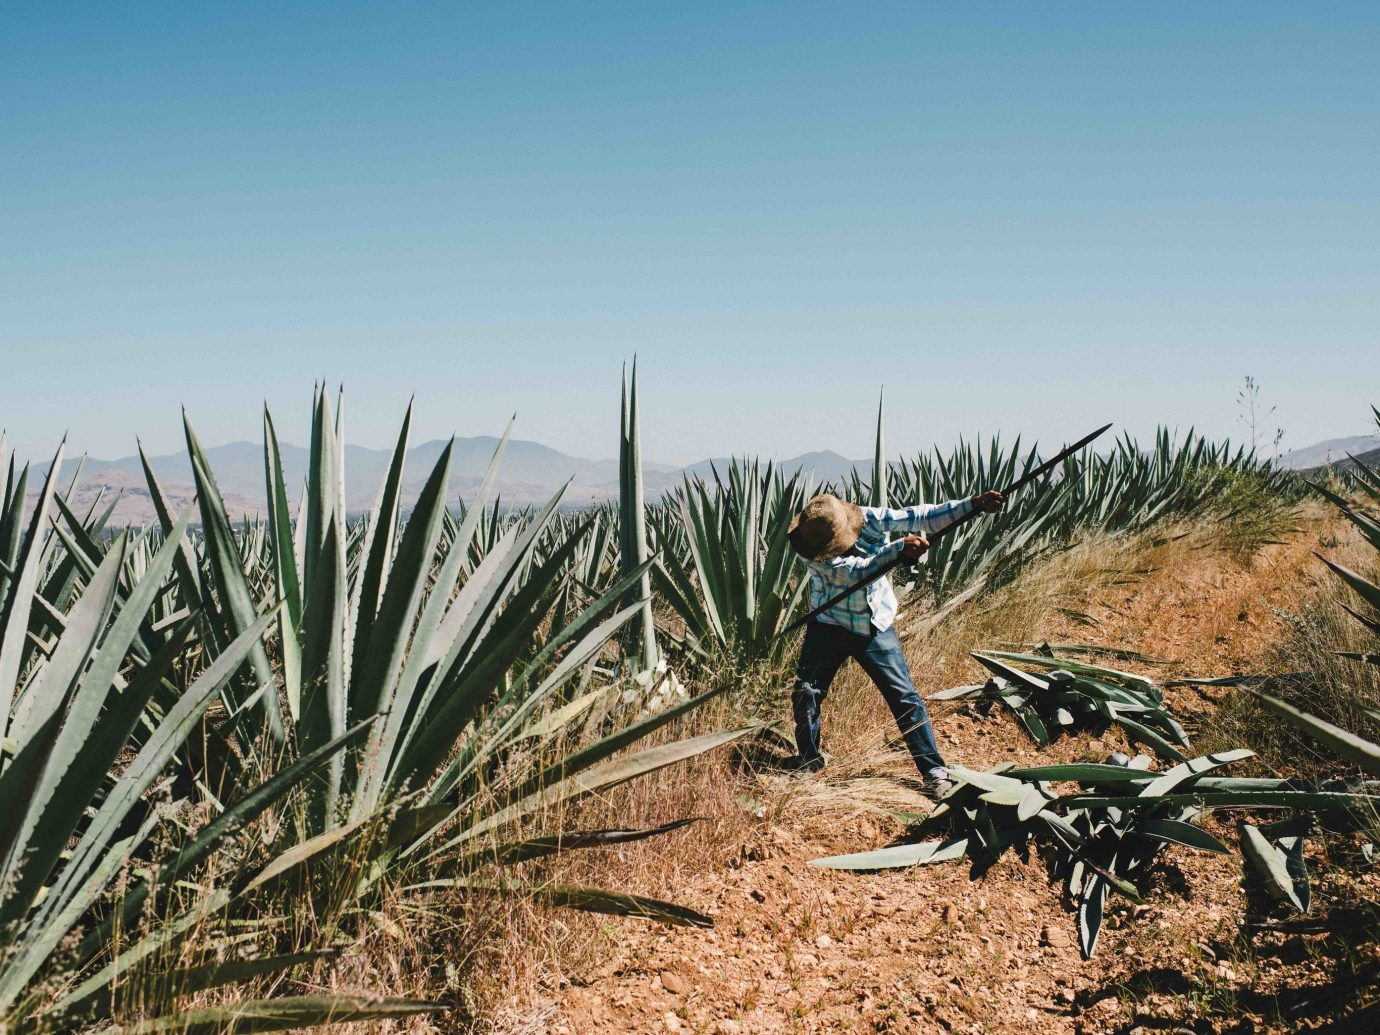 Arts + Culture Mexico Oaxaca Trip Ideas plant agave agave azul ecosystem vegetation shrubland grass family flowering plant arecales grass plant community crop field palm tree agriculture cactus tree sky ecoregion date palm plantation landscape